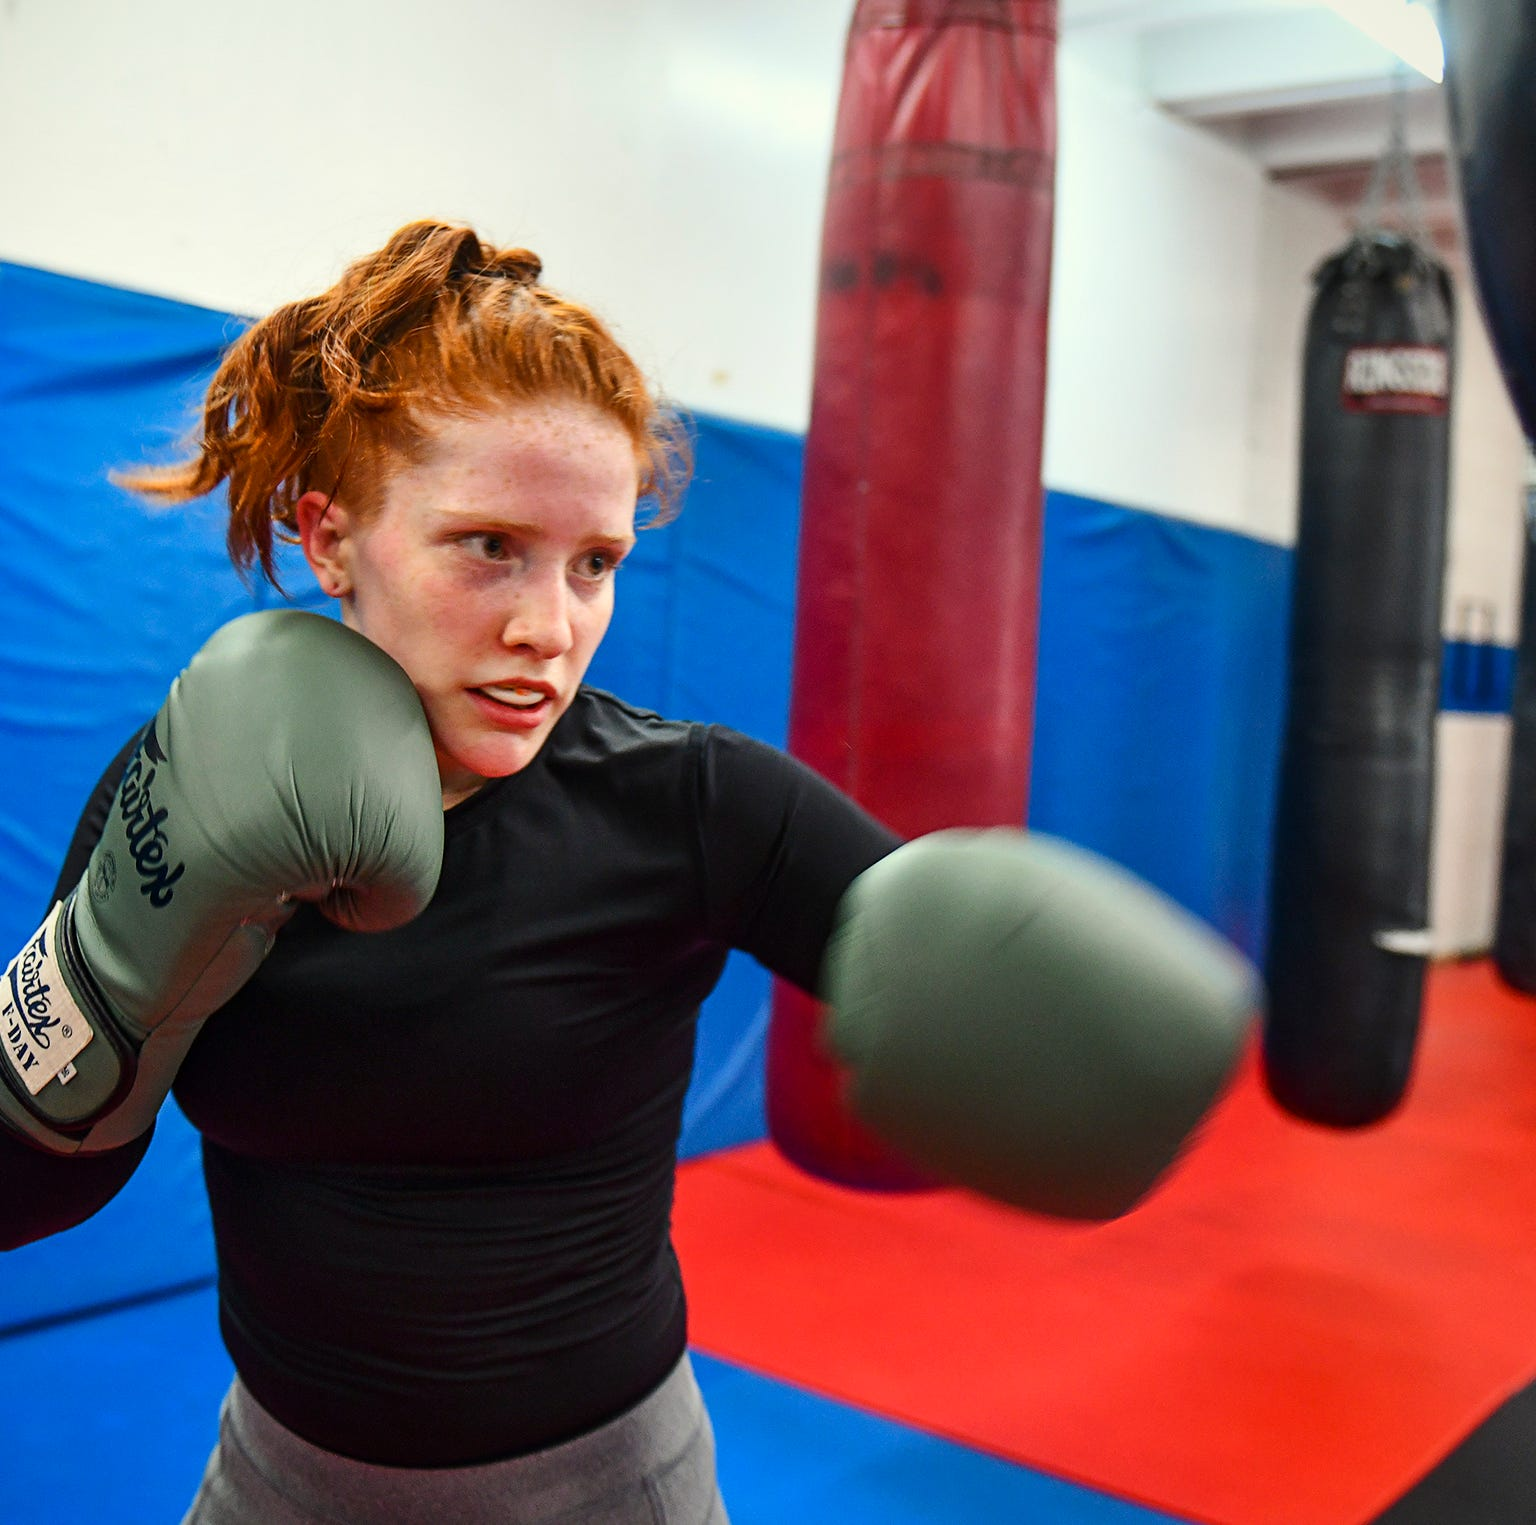 Sauk Rapids senior hopes to make her mark in MMA